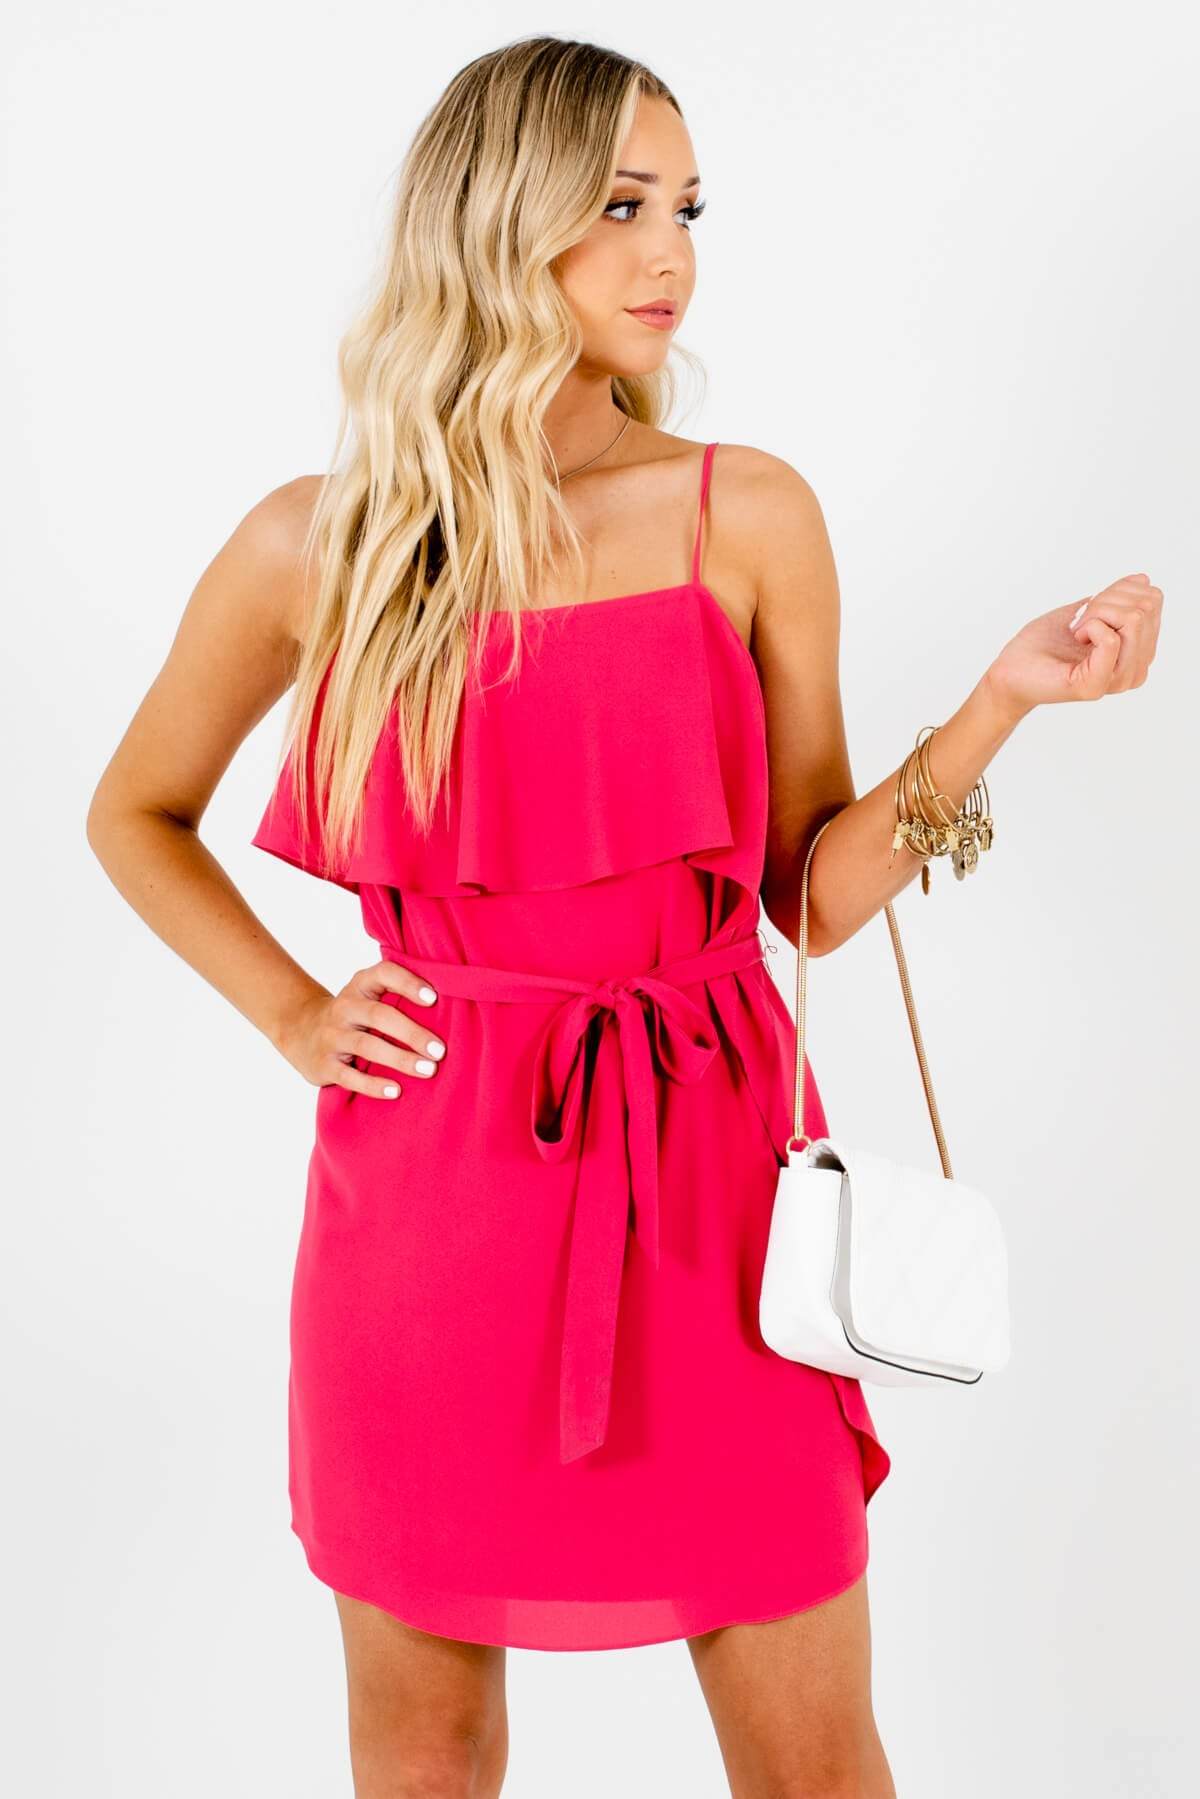 Hot Pink Ruffle Overlay Boutique Mini Dresses for Women